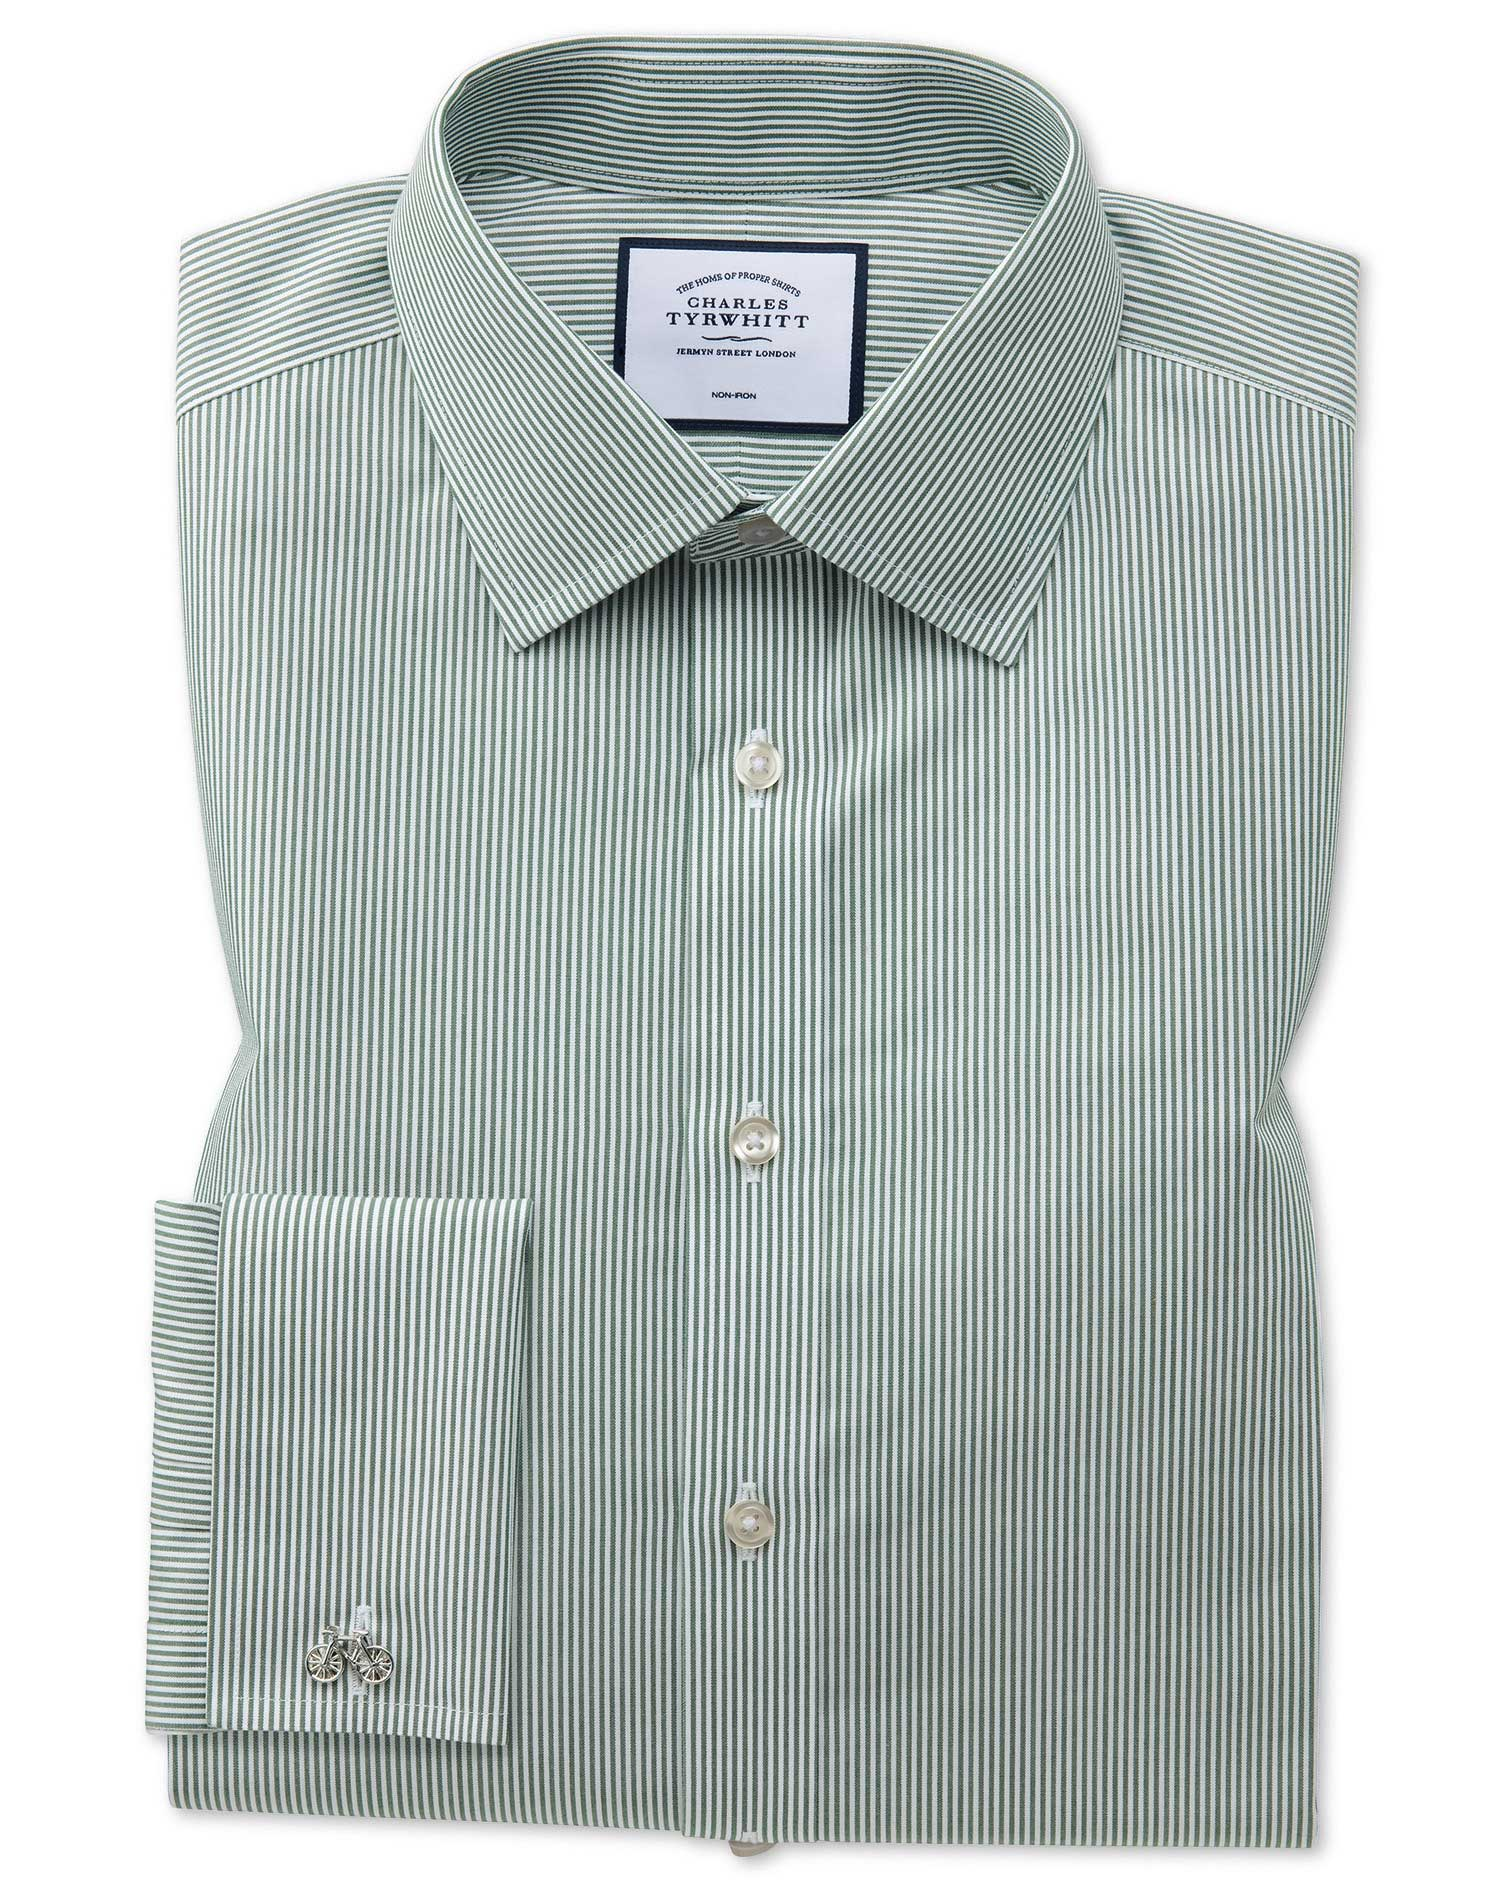 Classic Fit Non-Iron Olive Bengal Stripe Cotton Formal Shirt Single Cuff Size 16/38 by Charles Tyrwh